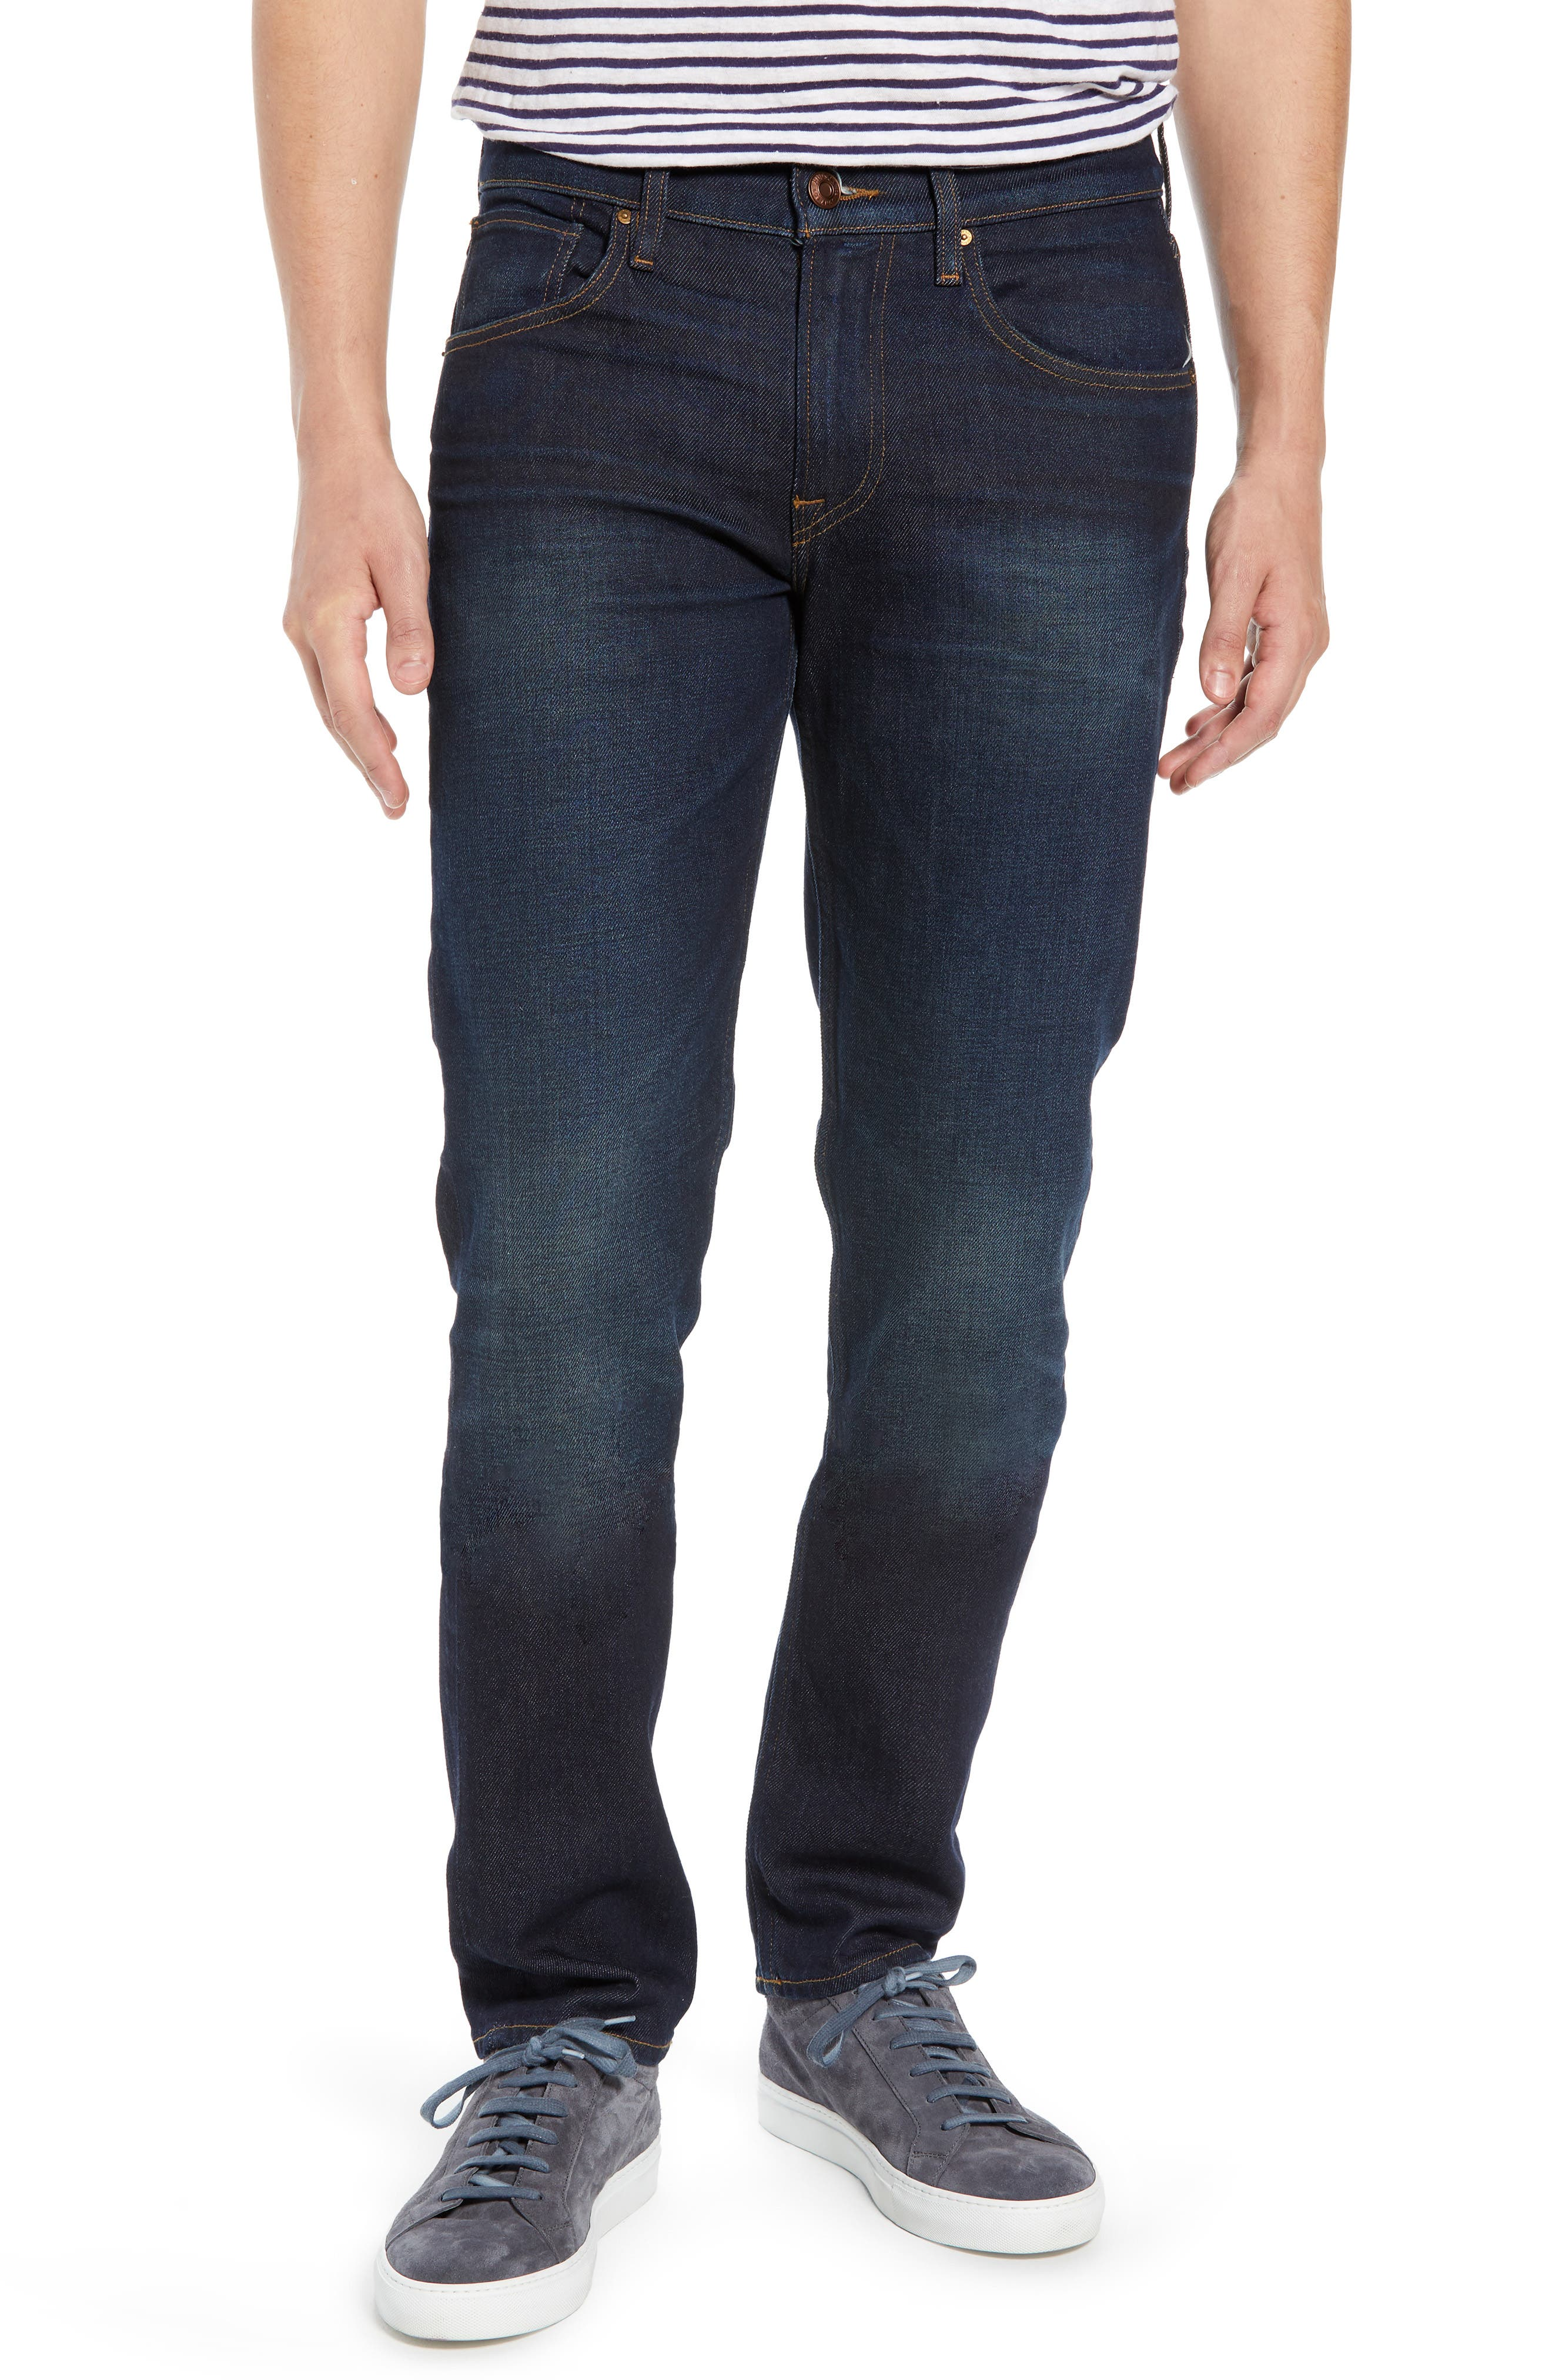 HUDSON JEANS, Blake Slim Fit Jeans, Main thumbnail 1, color, VERKLER